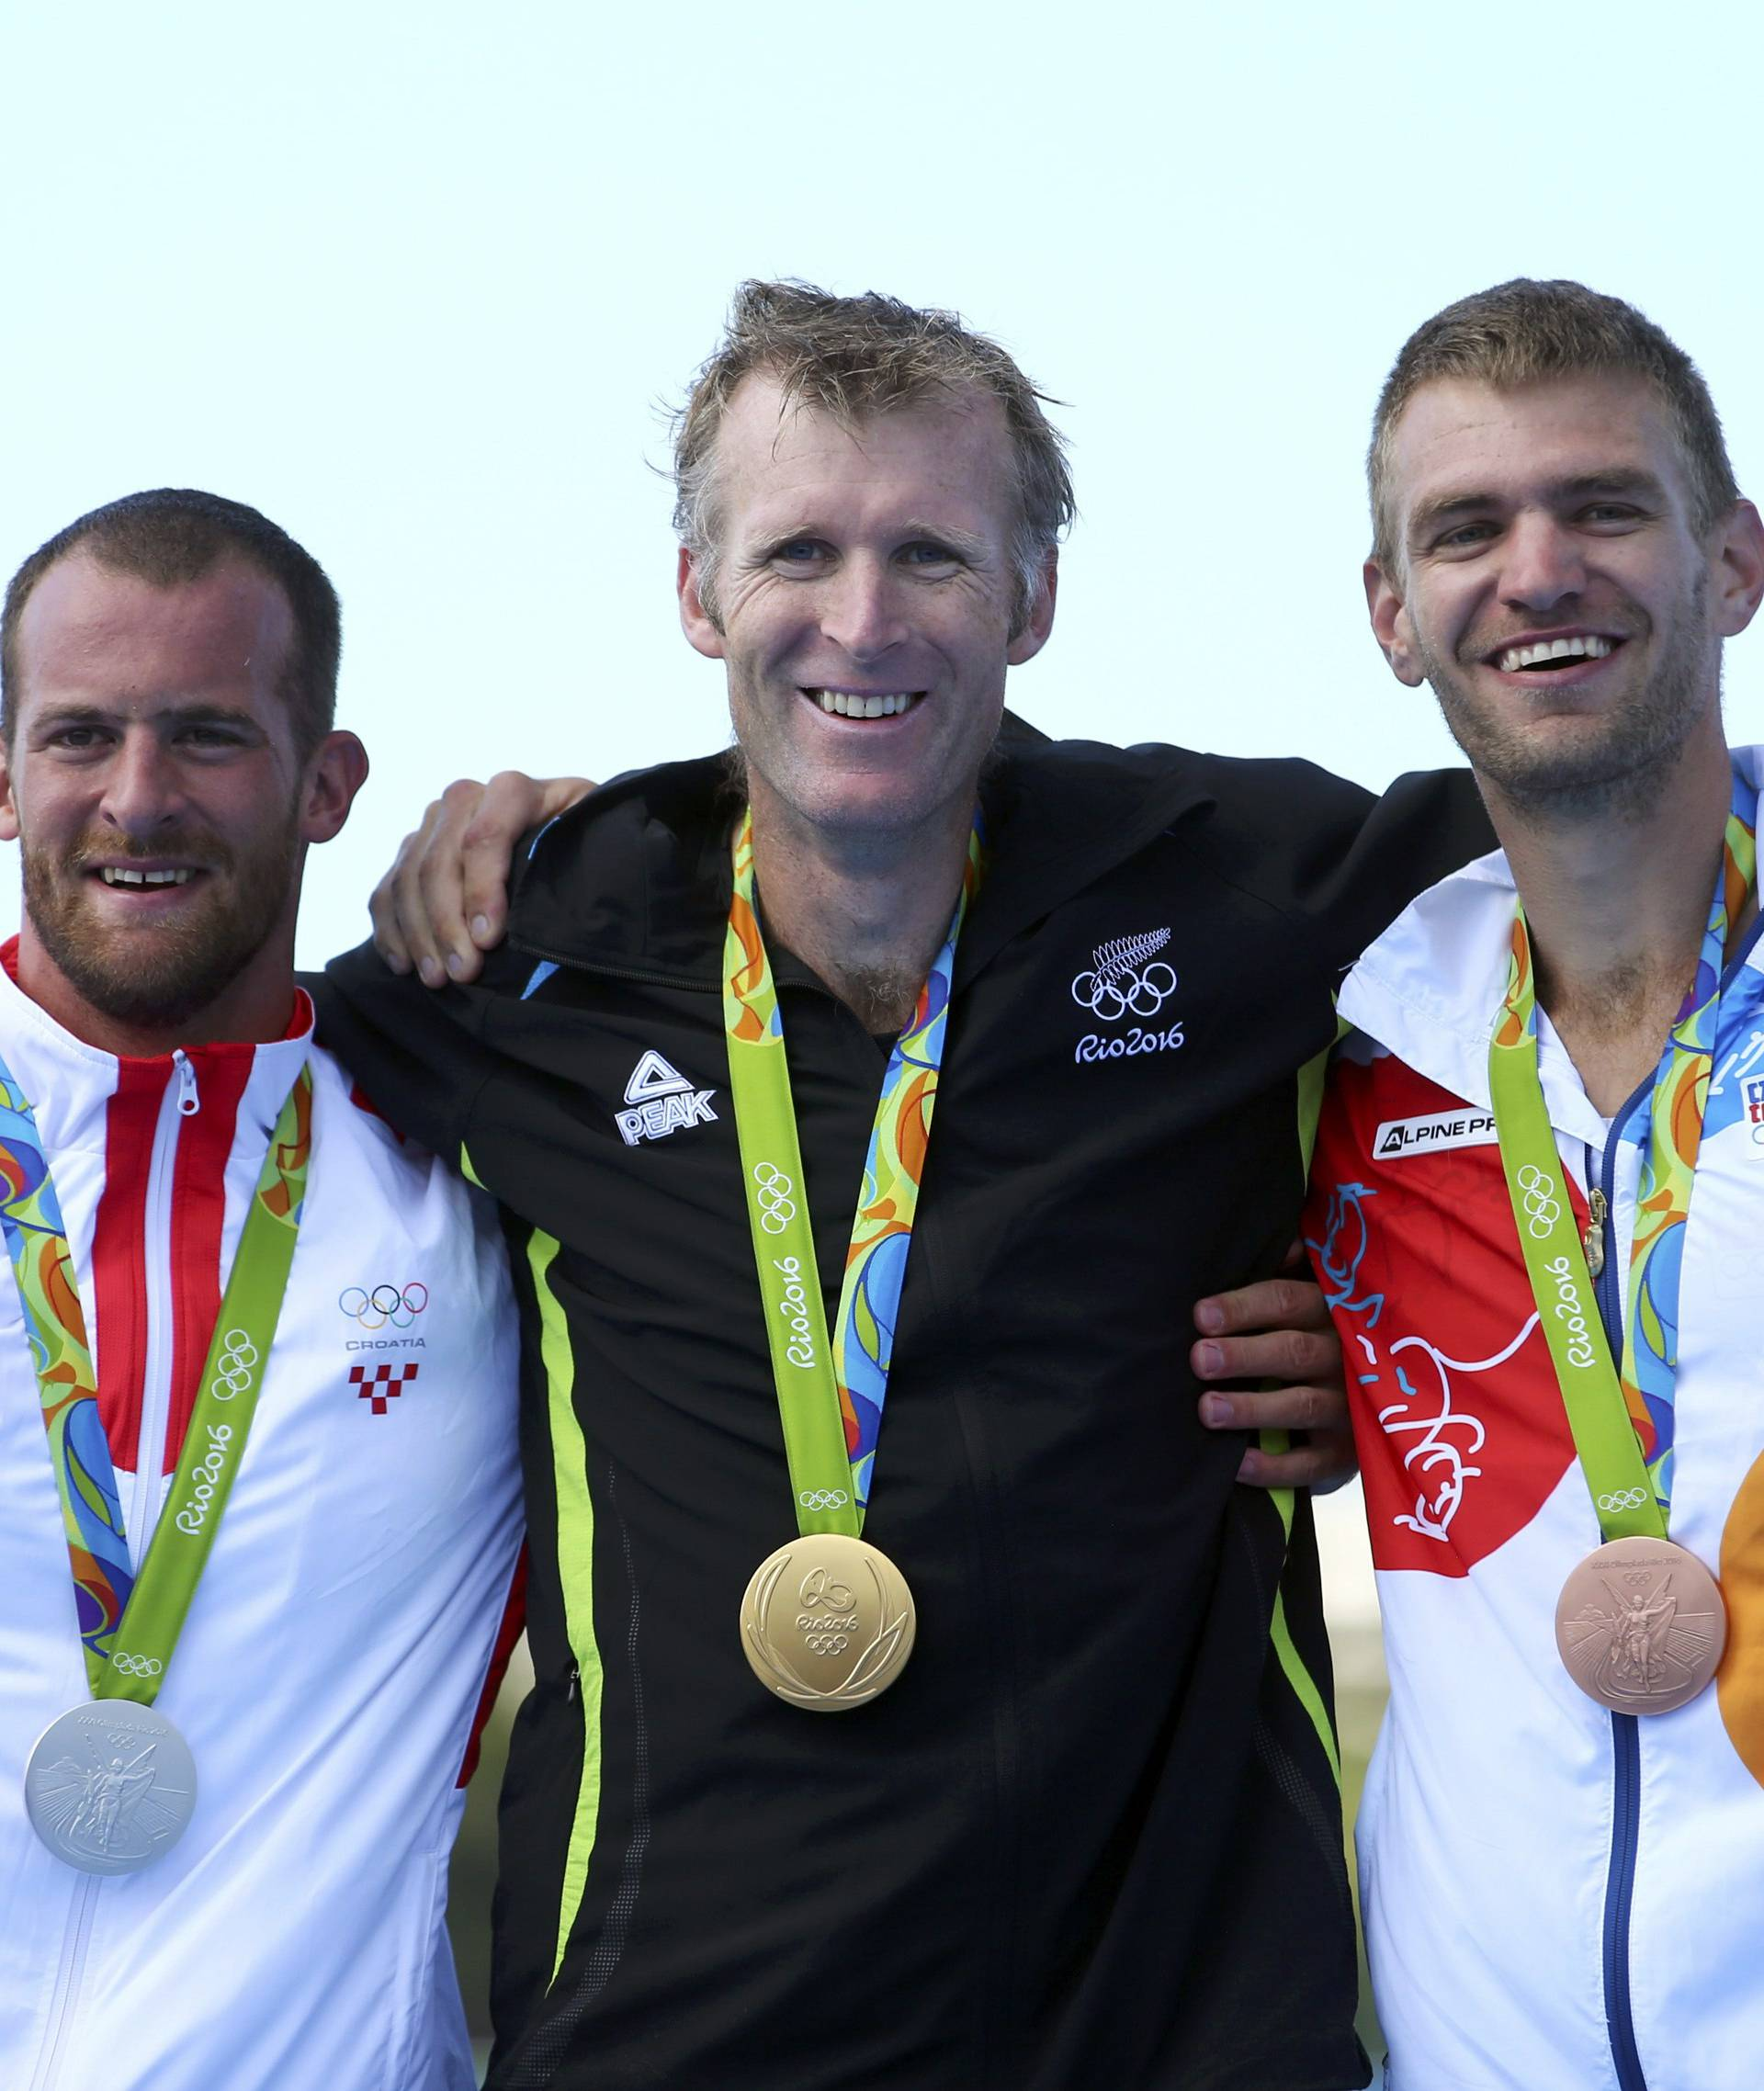 Rowing - Men's Single Sculls Victory Ceremony